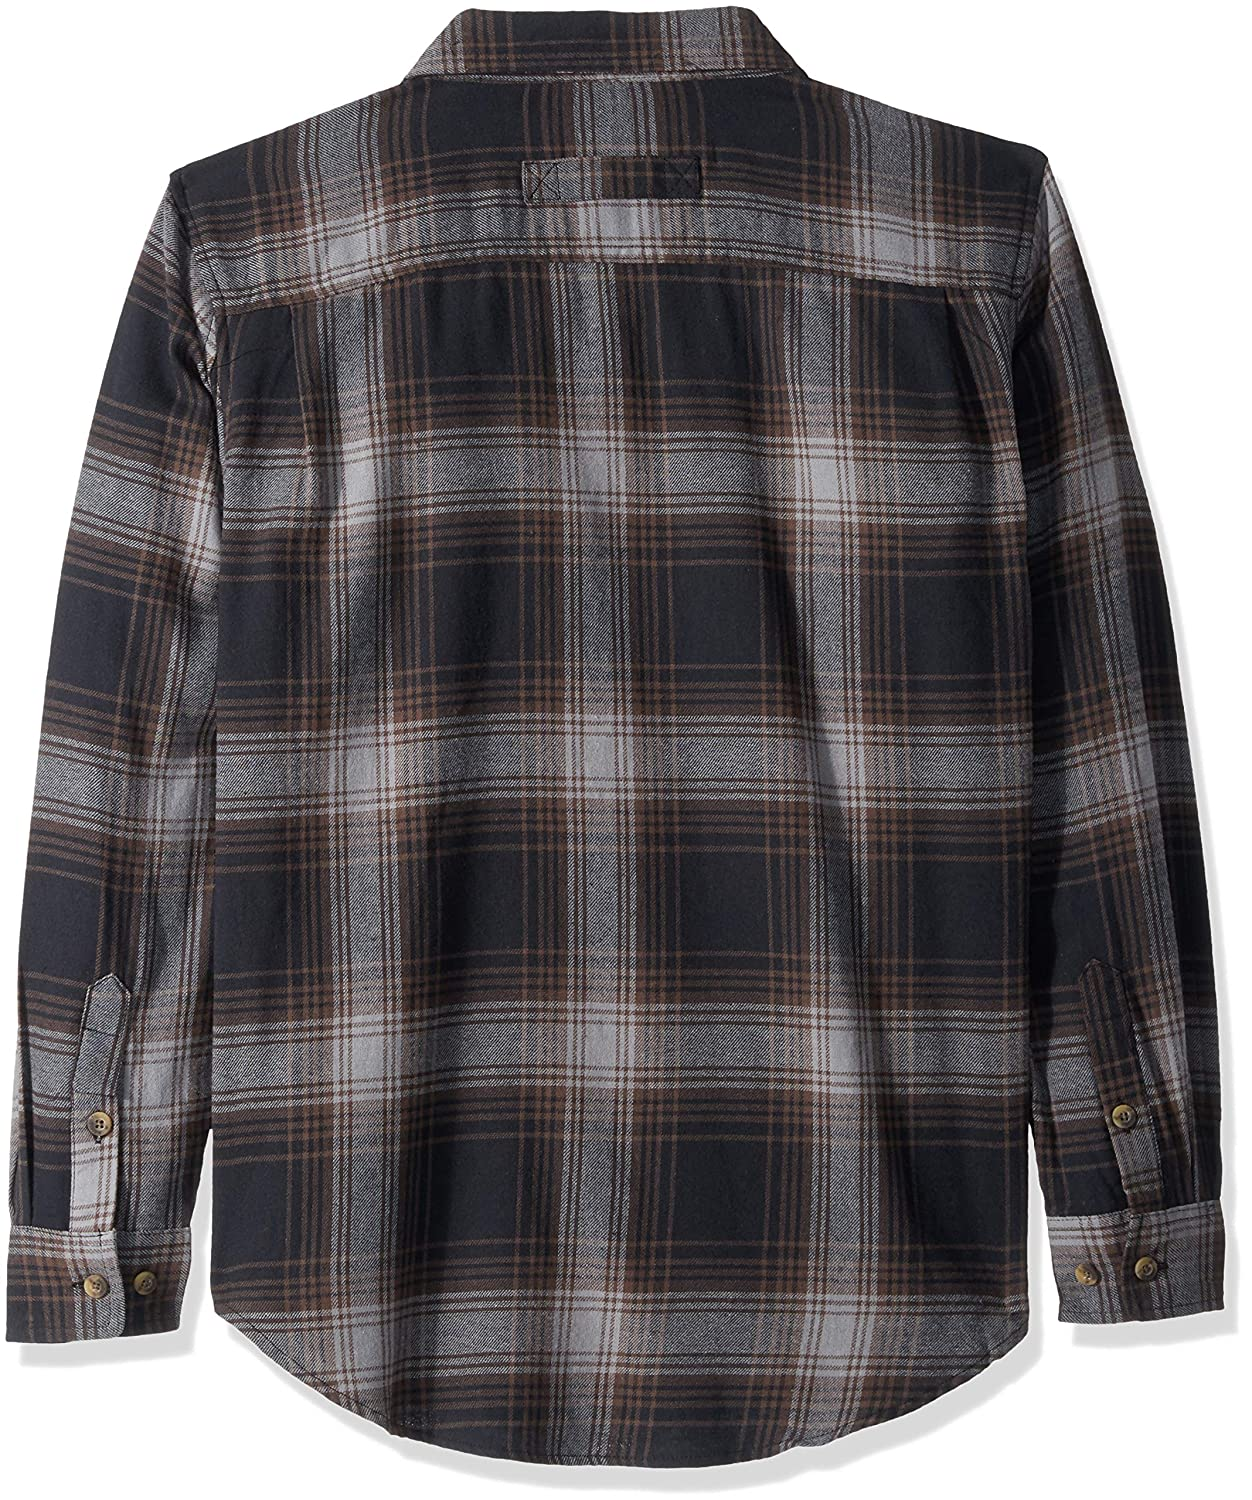 Smiths Workwear Mens Full-Swing Cotton Flannel Button-Down Shirt